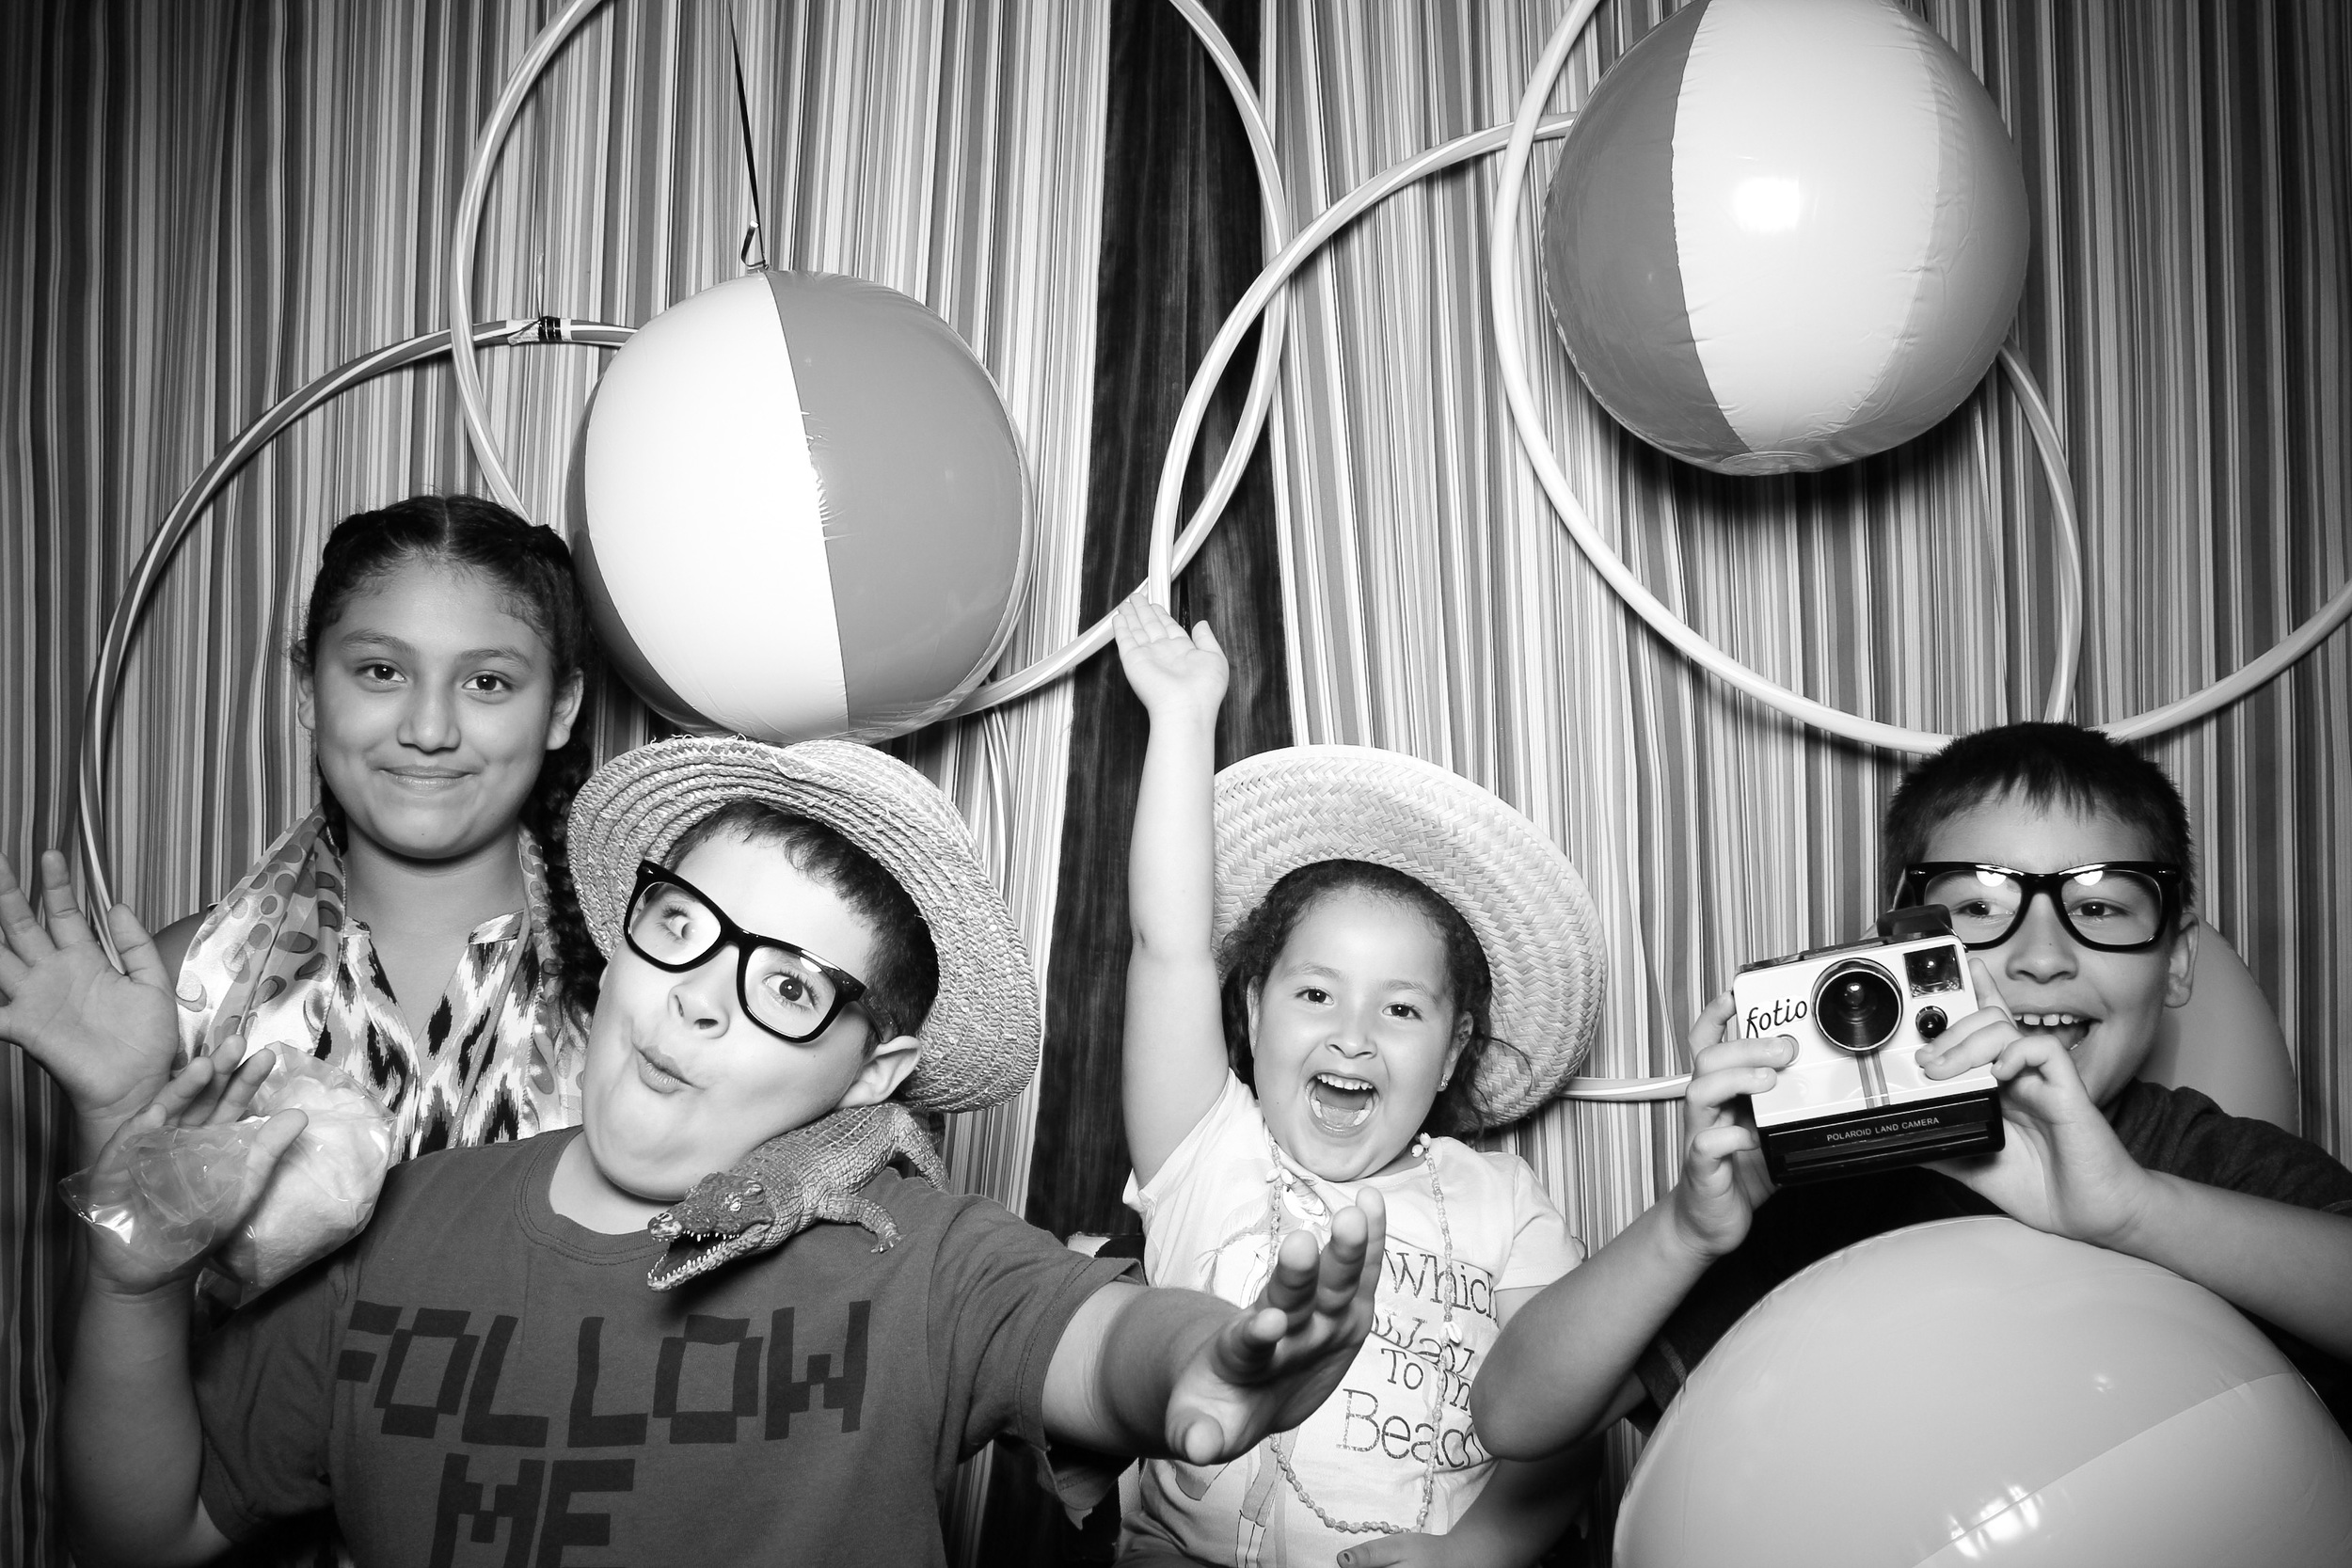 These kids were having a blast with our Fotio props!